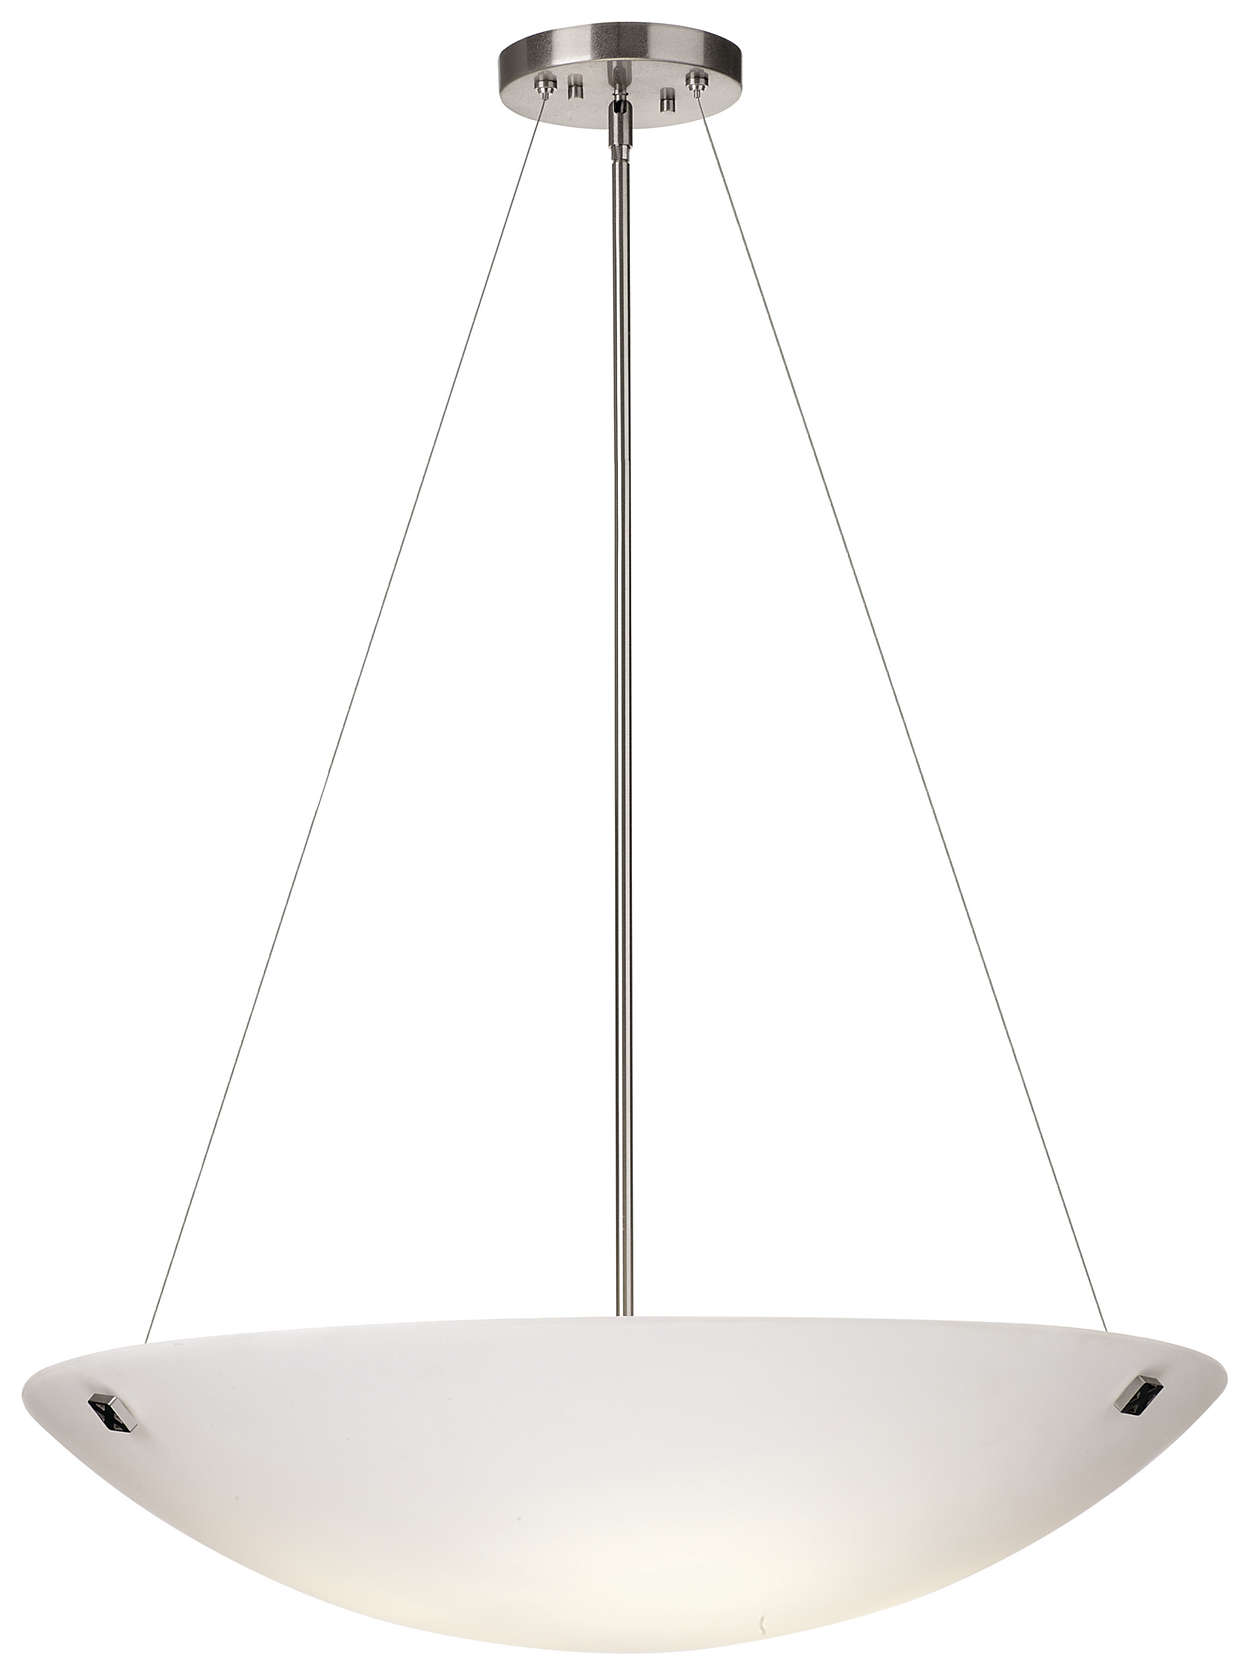 Crossroads 4-light Pendant in Satin Nickel finish